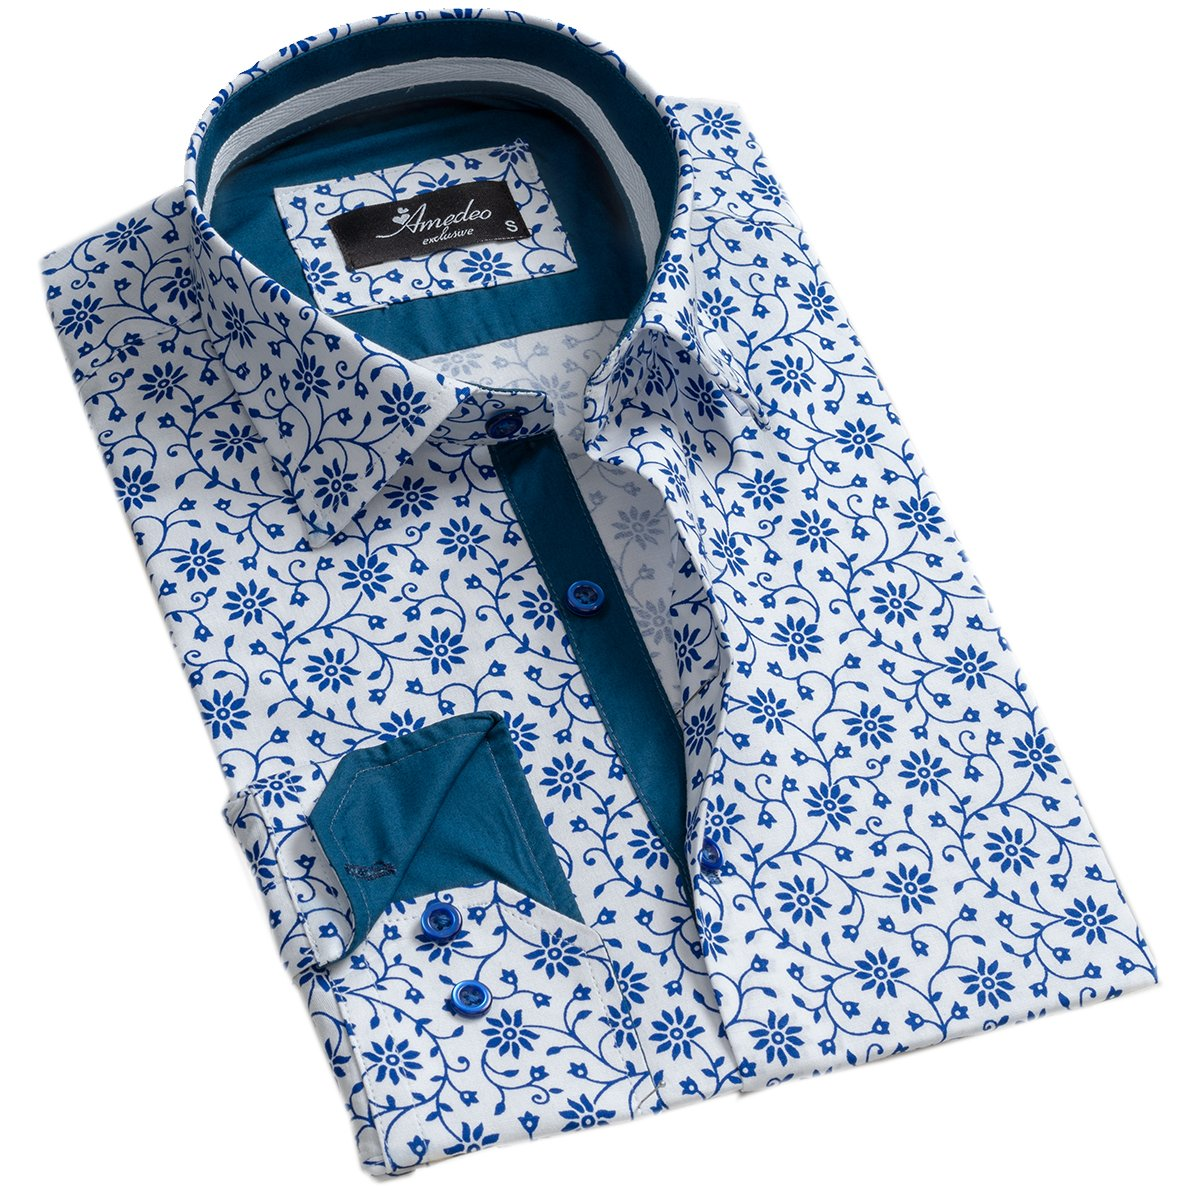 White Blue Floral Mens Slim Fit Designer Dress Shirt - tailored Cotton Shirts for Work and Casual Wear - Amedeo Exclusive